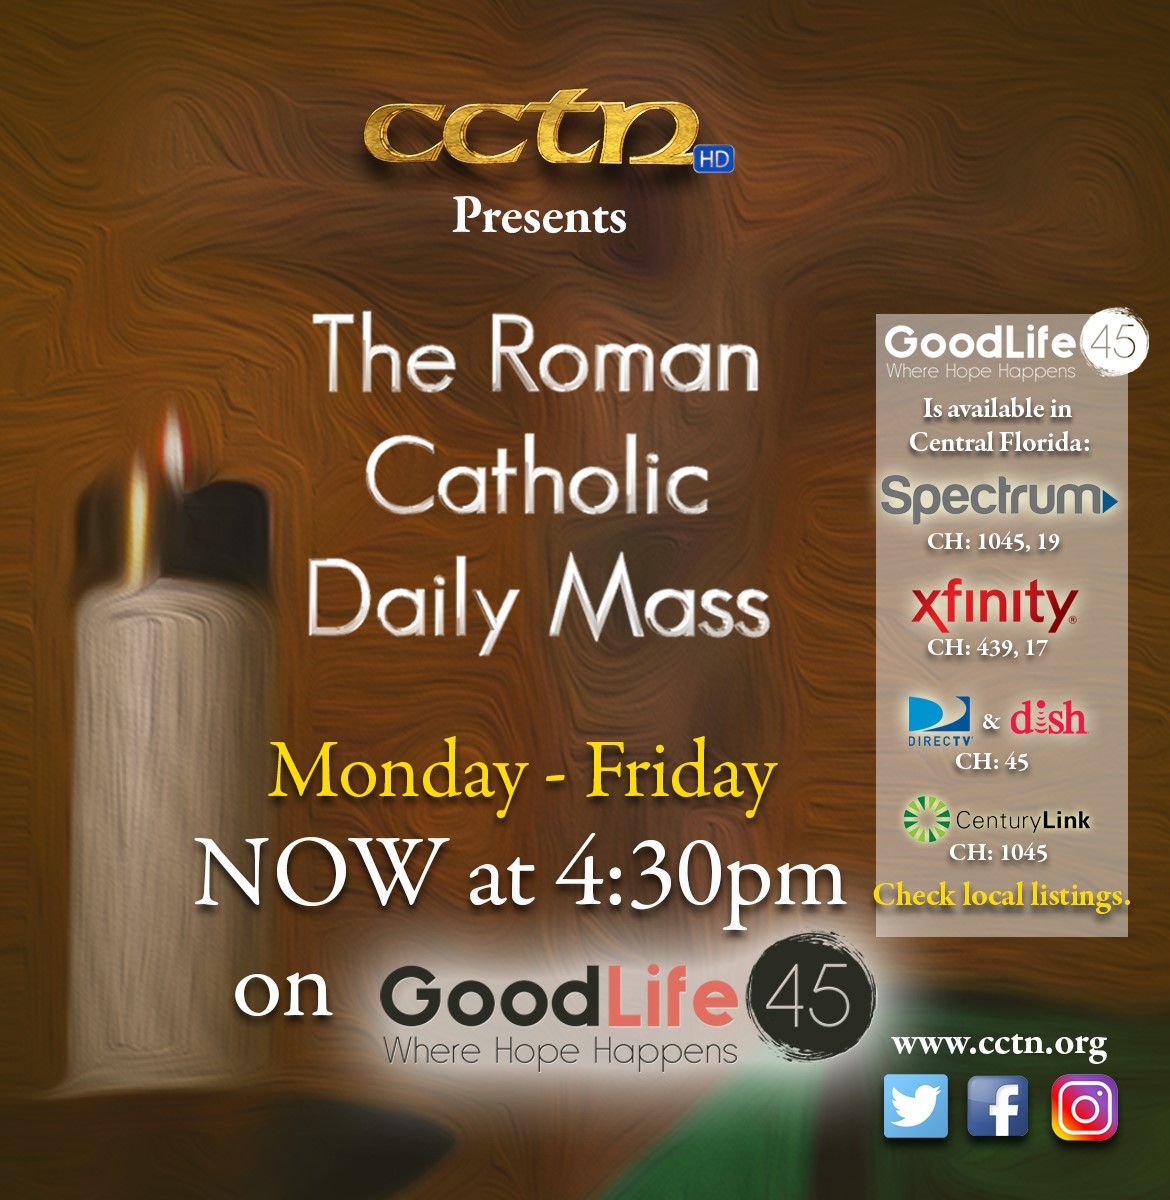 New Time for Daily Mass Broadcasting